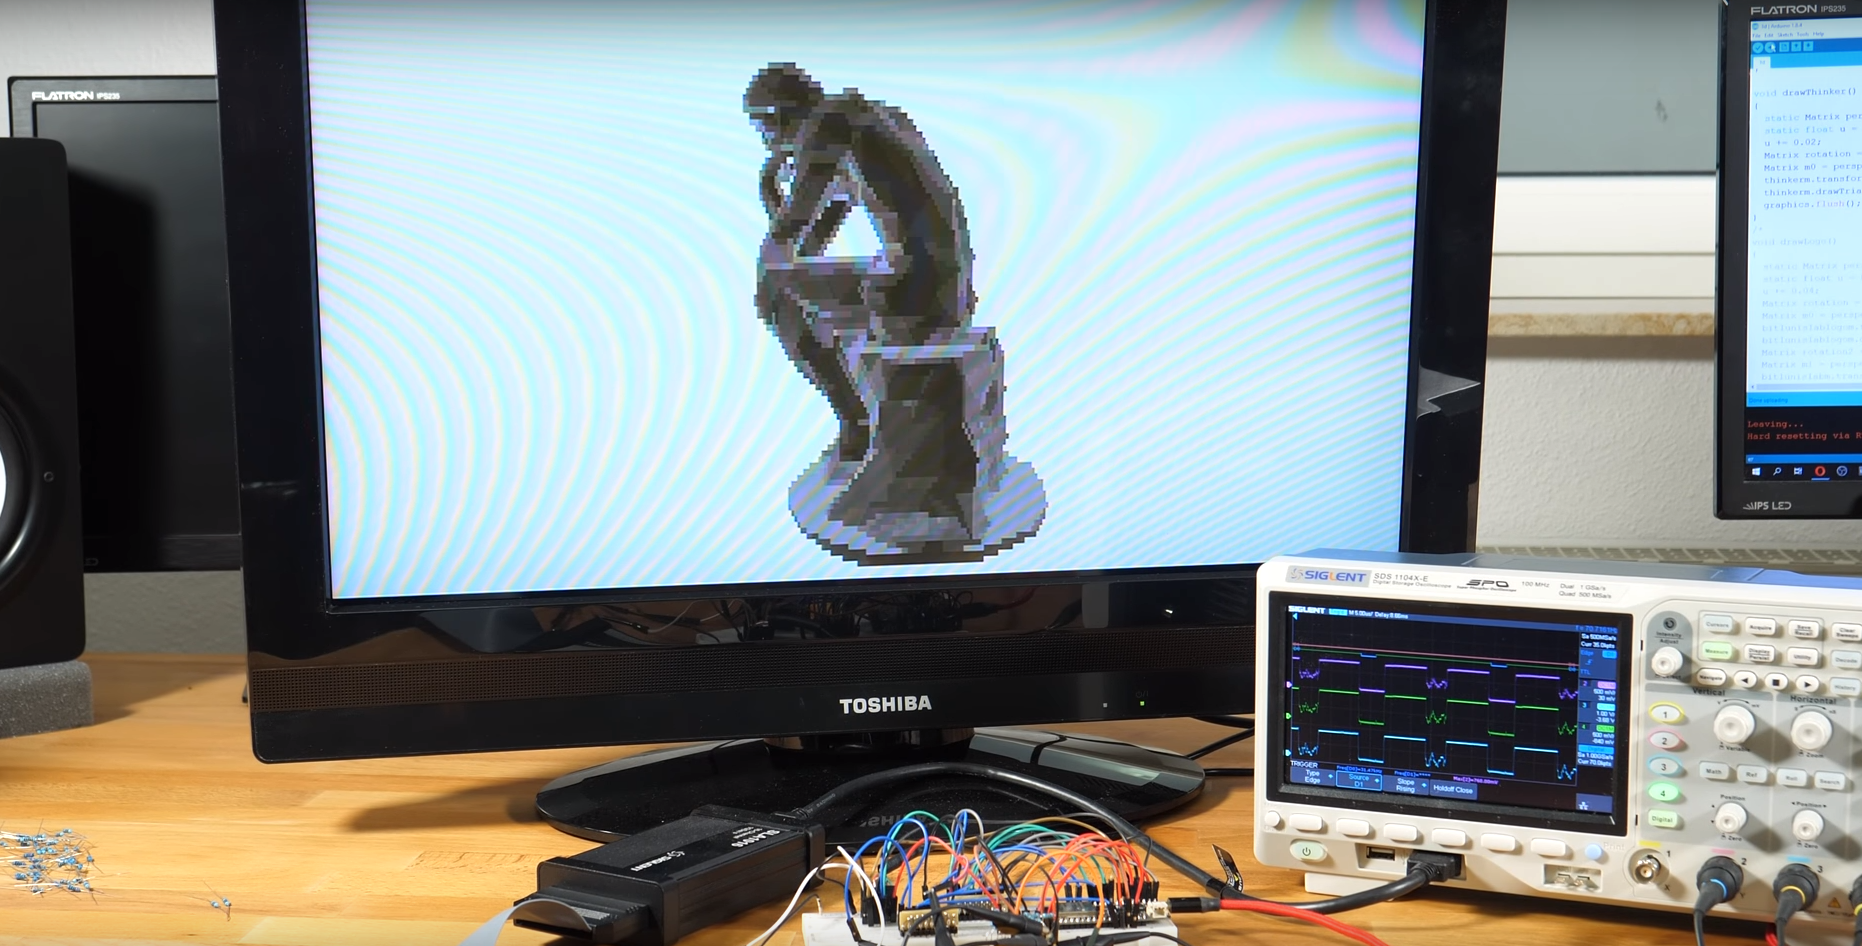 Render 3D Models with an ESP32 Microcontroller That Uses VGA